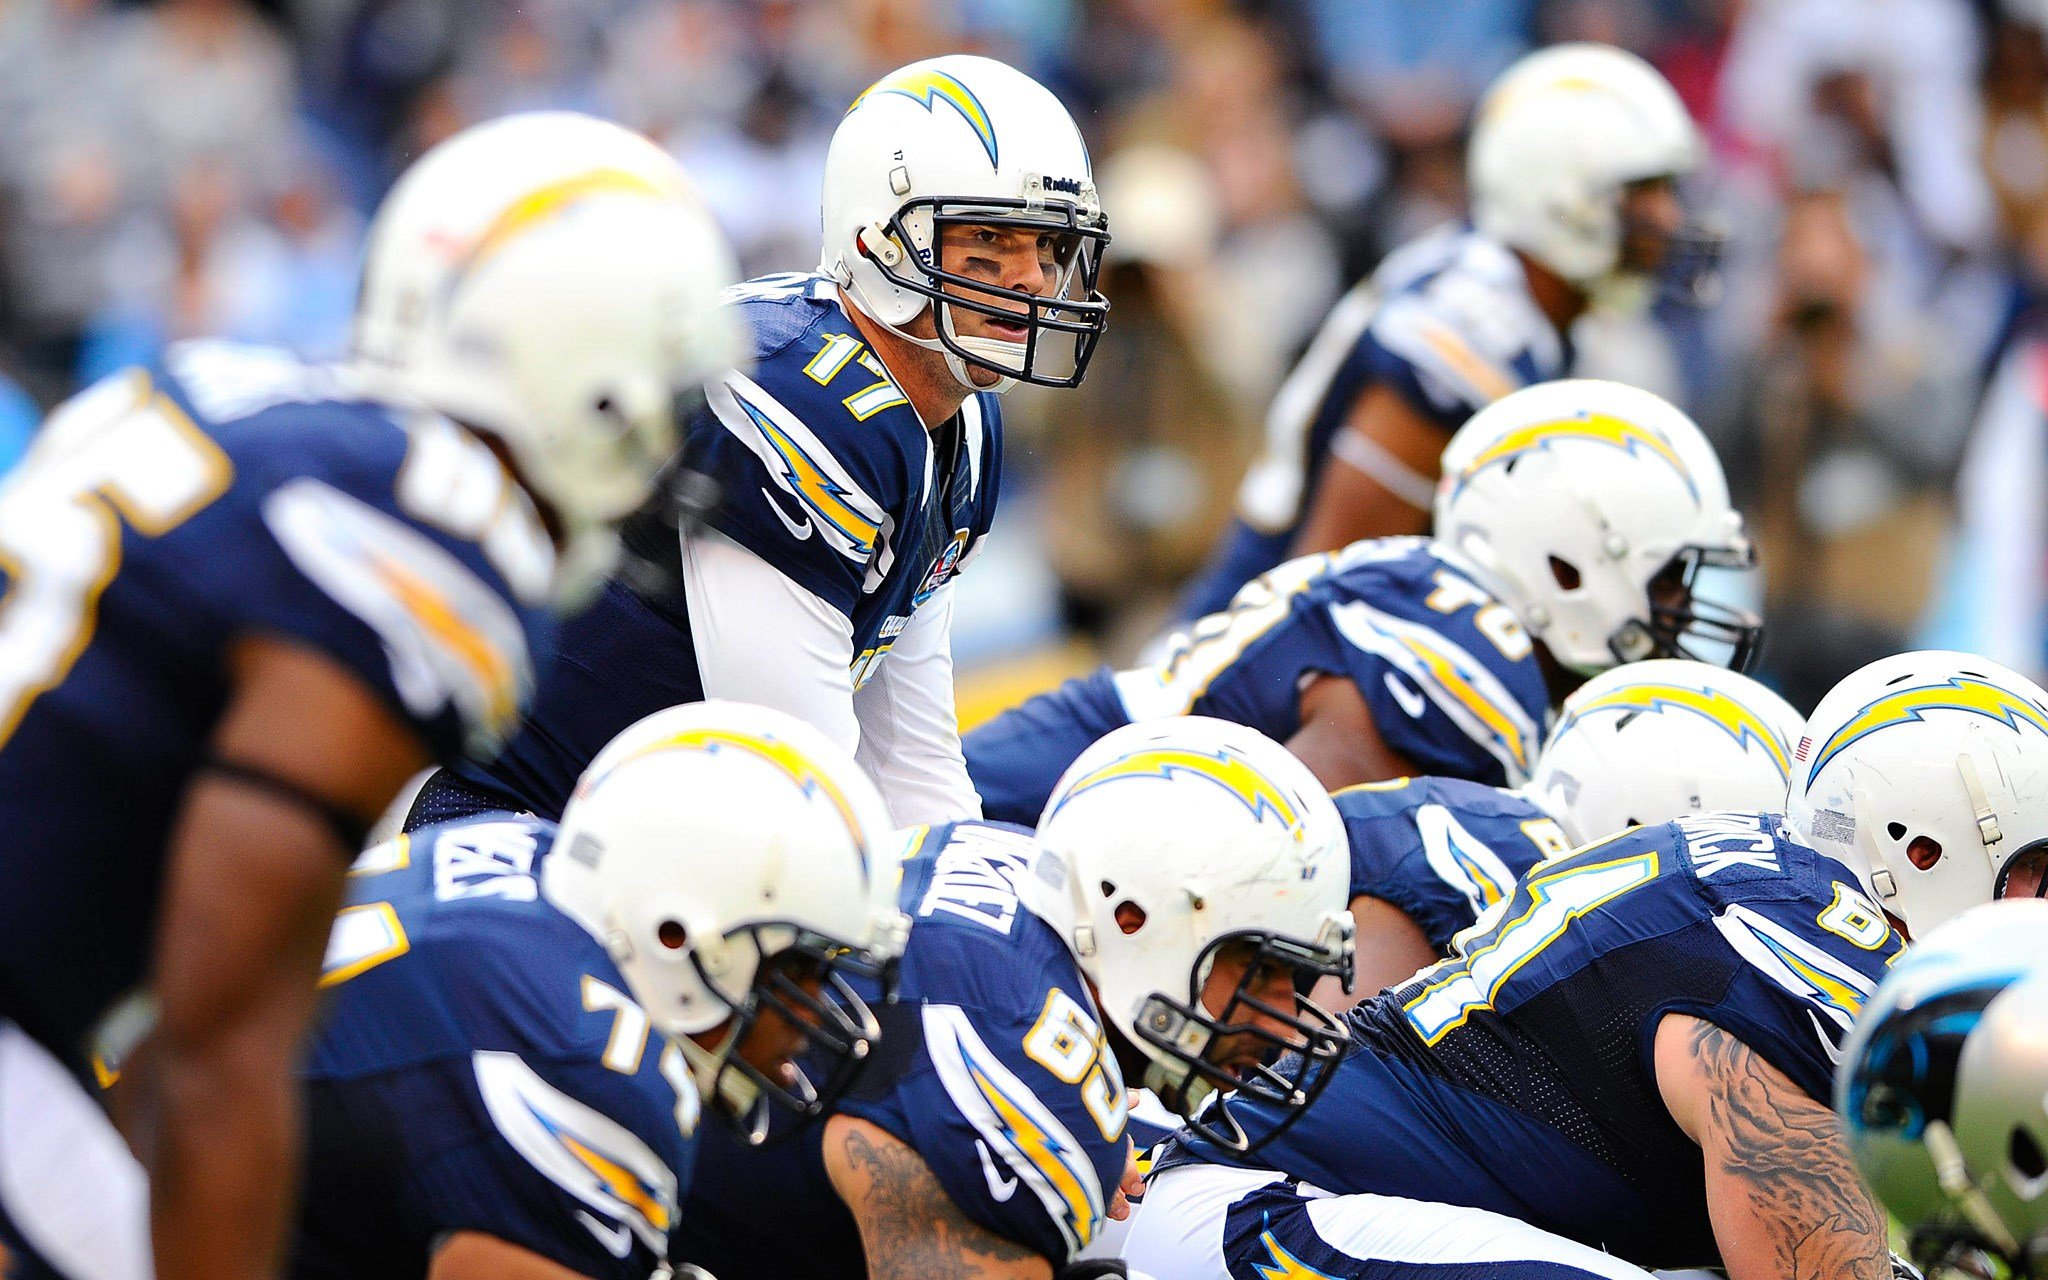 Details of Chargers ballot initiative emerge